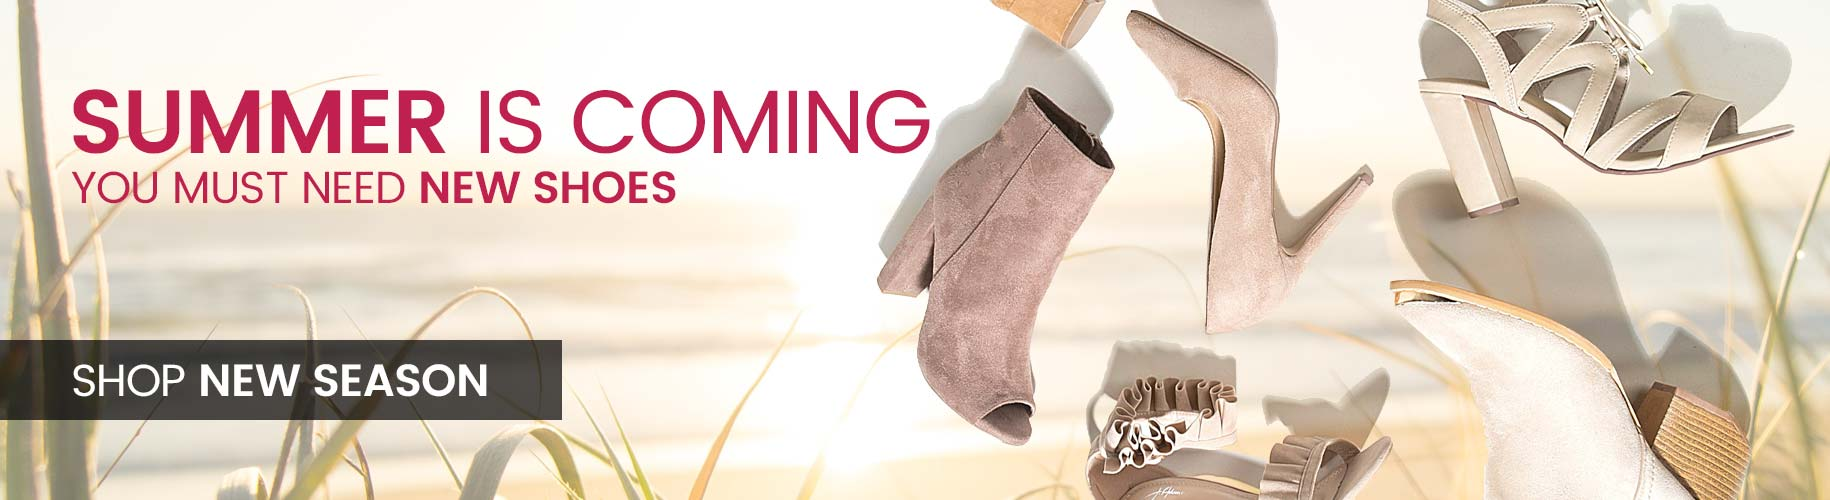 Summer is coming you must need new shoes - shop new season